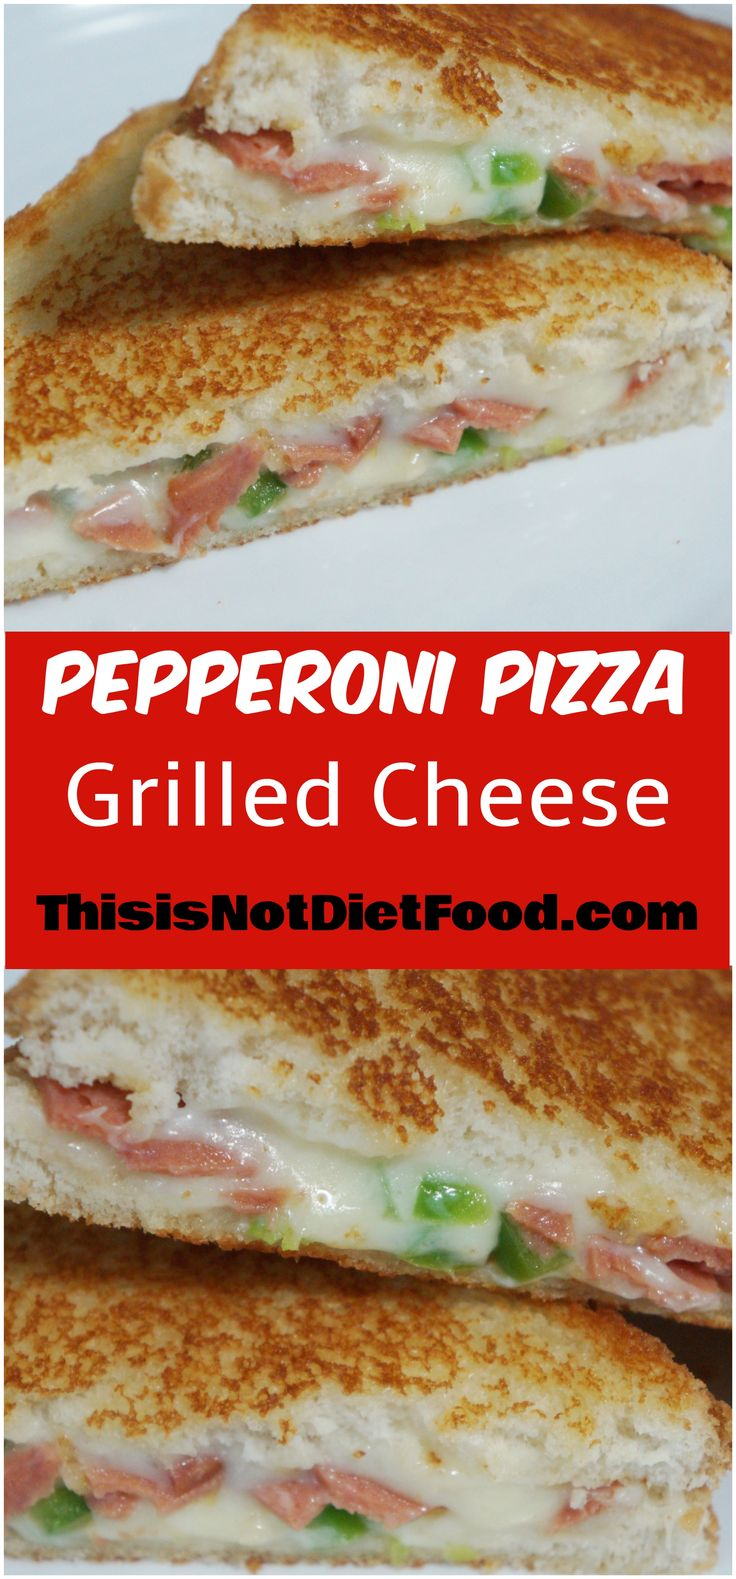 Pepperoni Pizza Grilled Cheese with Green Peppers and Mozzarella Cheese. Quick and easy meal idea. Great for kids.